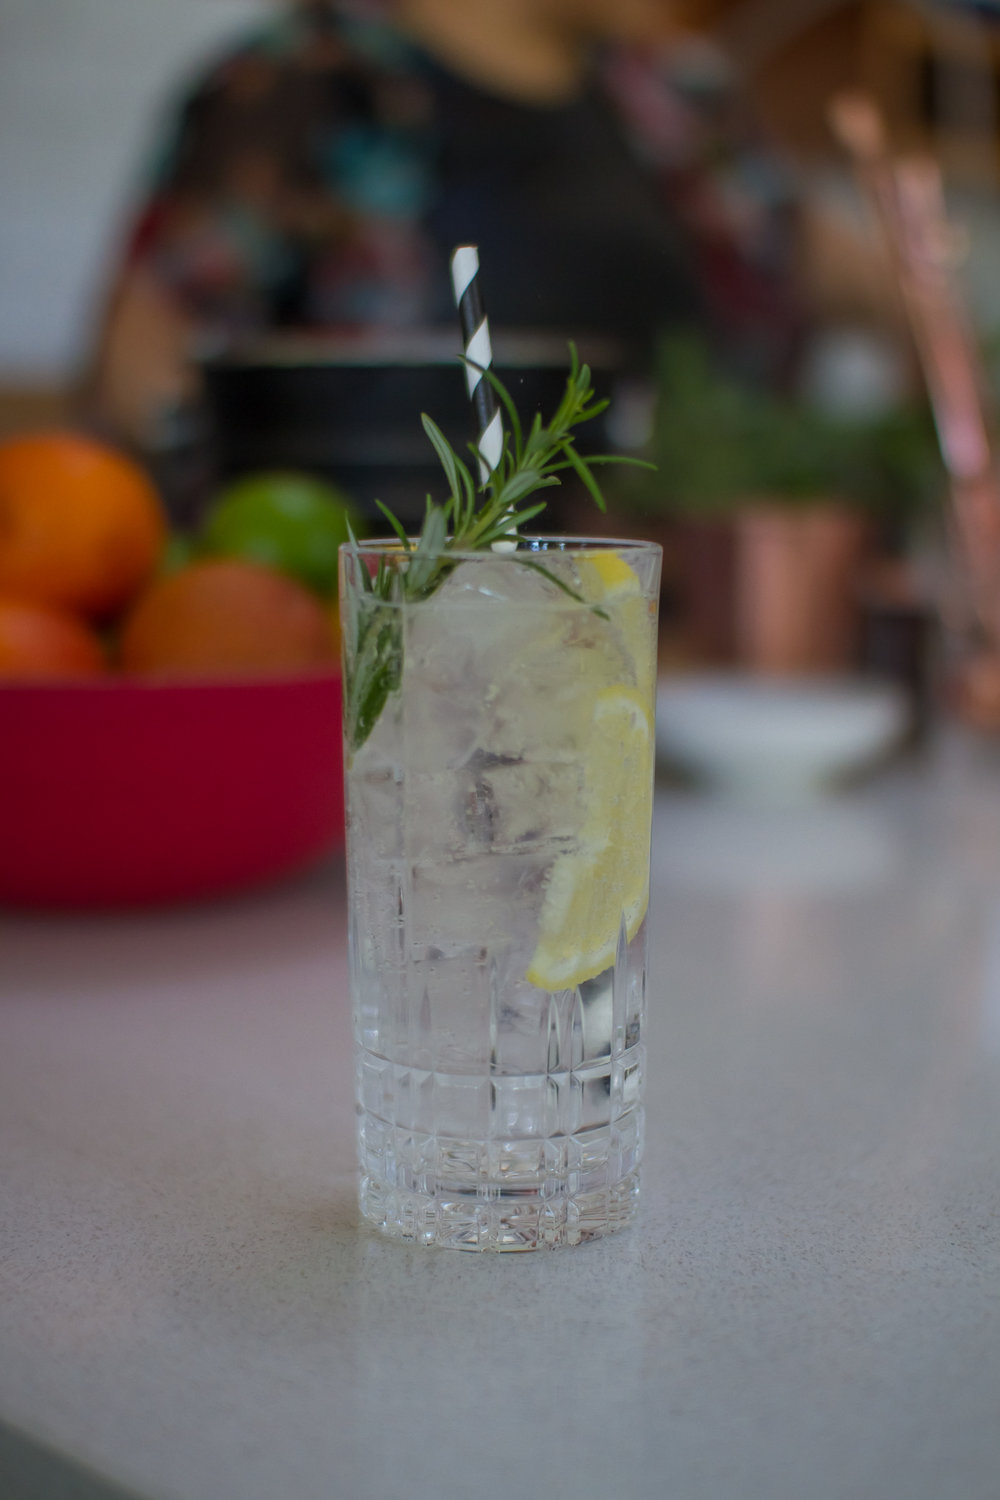 Animus Macedon Dry Gin and StrangeLove No. 8 tonic, garnished with a slice of lemon and a sprig of rosemary  Photo: Steve Edwards @steve_sketch